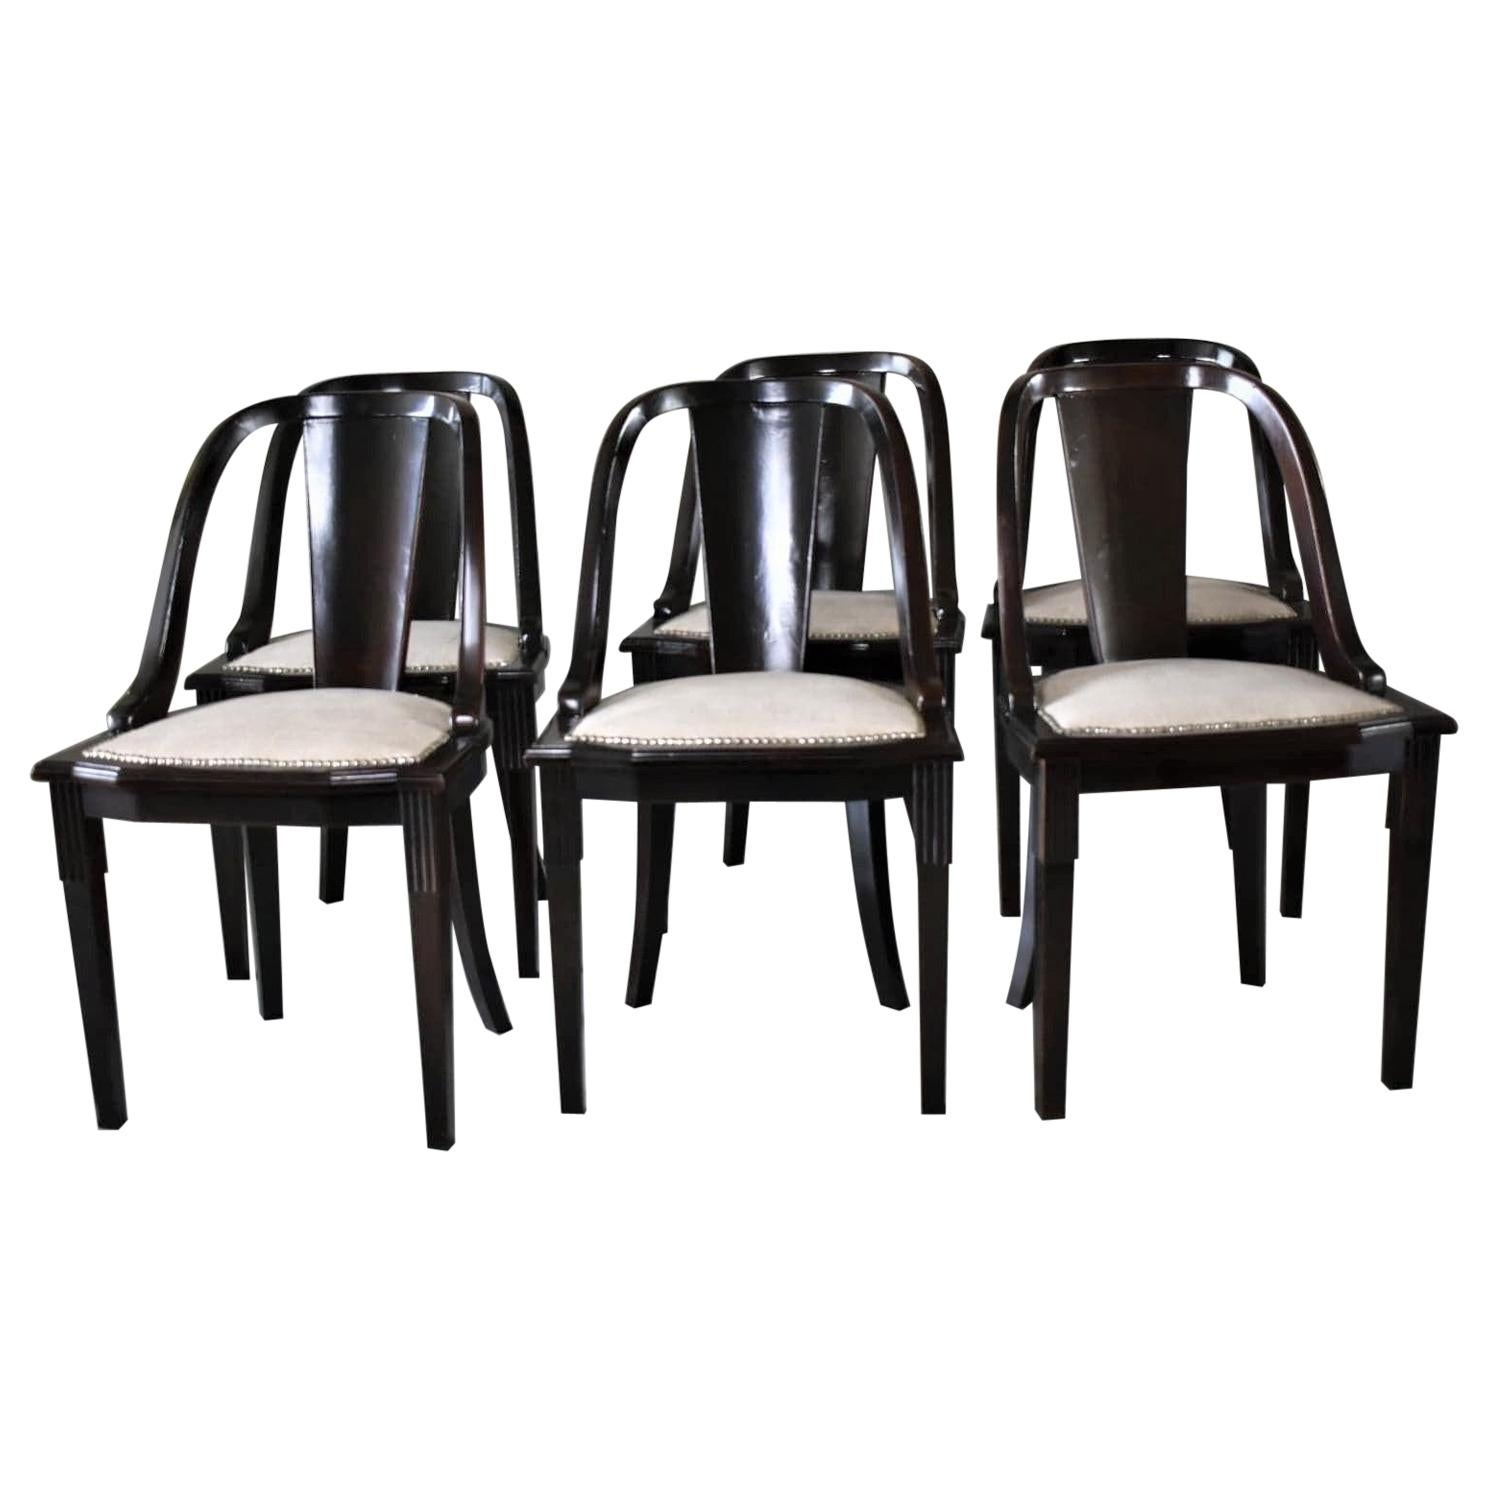 """Set of 6 French Art Deco """"Gondola"""" Dining Chairs, 1930s"""